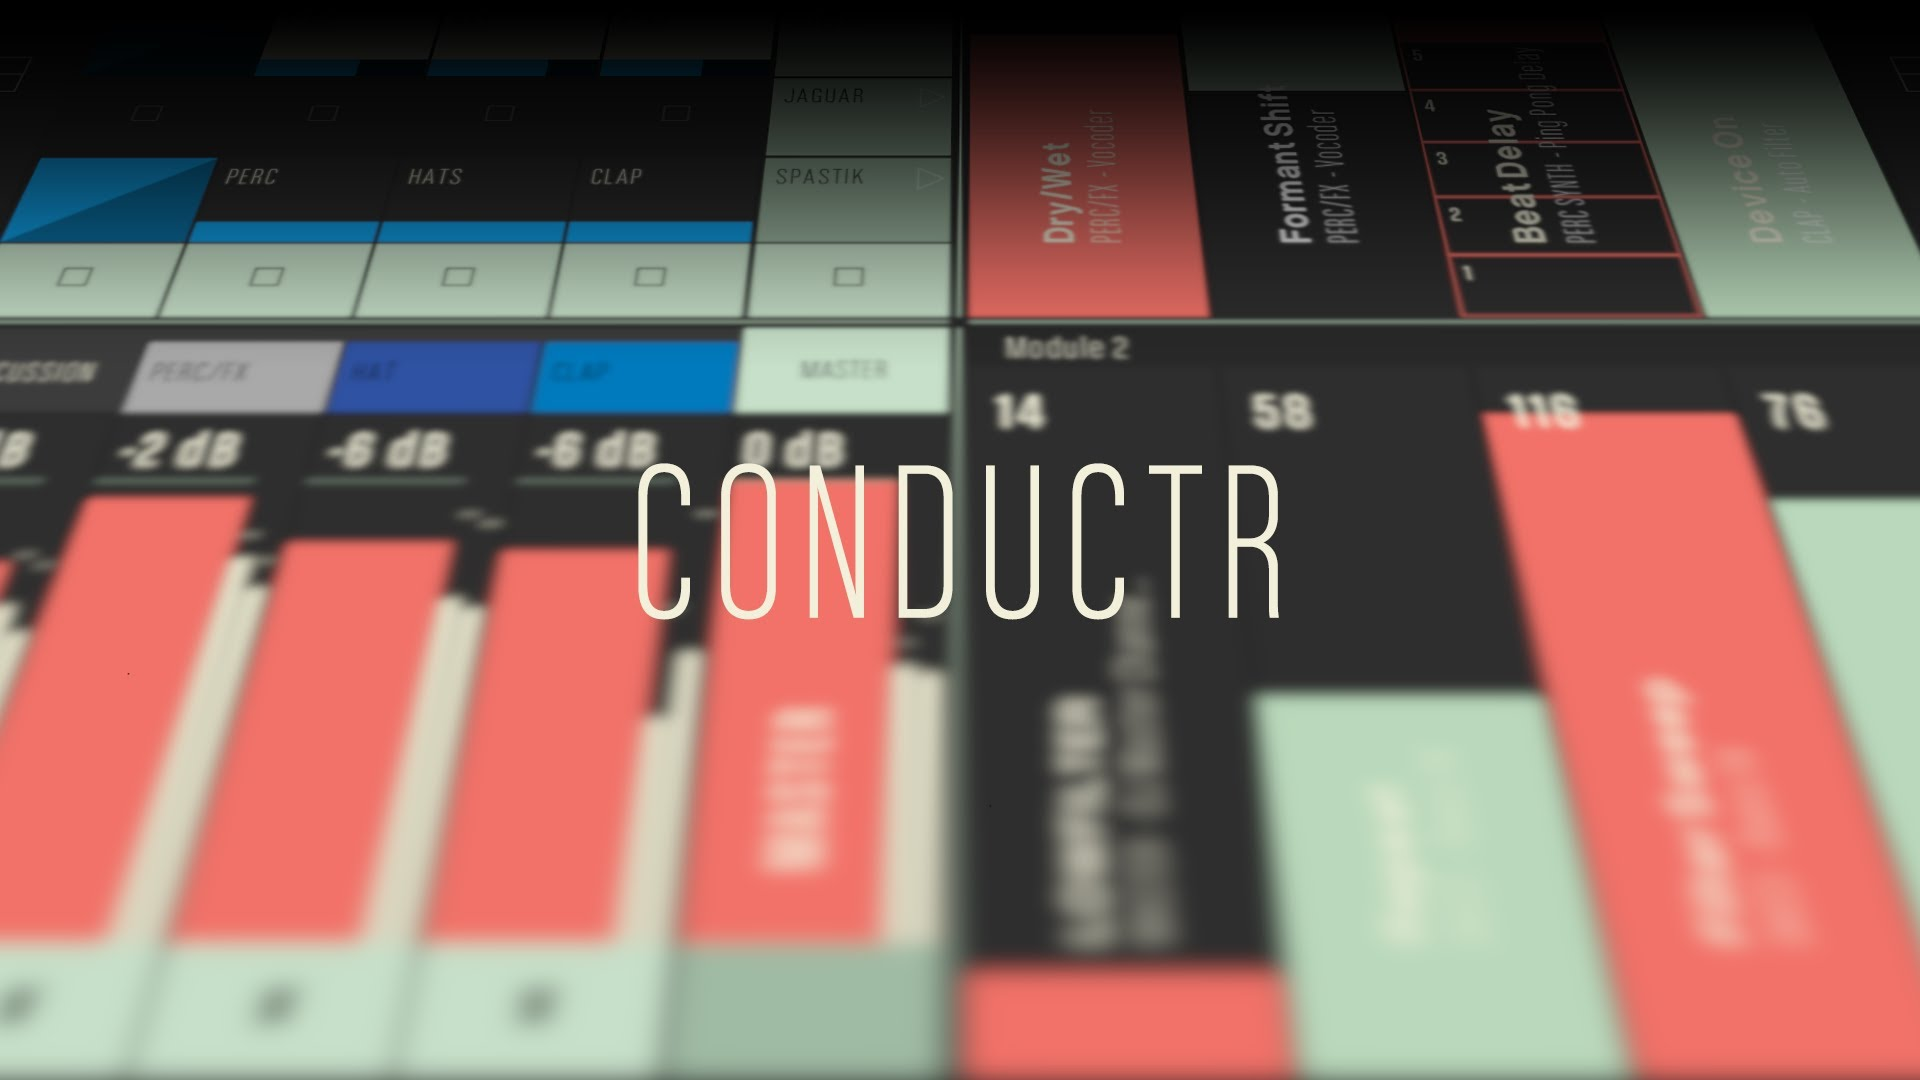 Conductr: iPad Ableton Live Controller for Live Performance